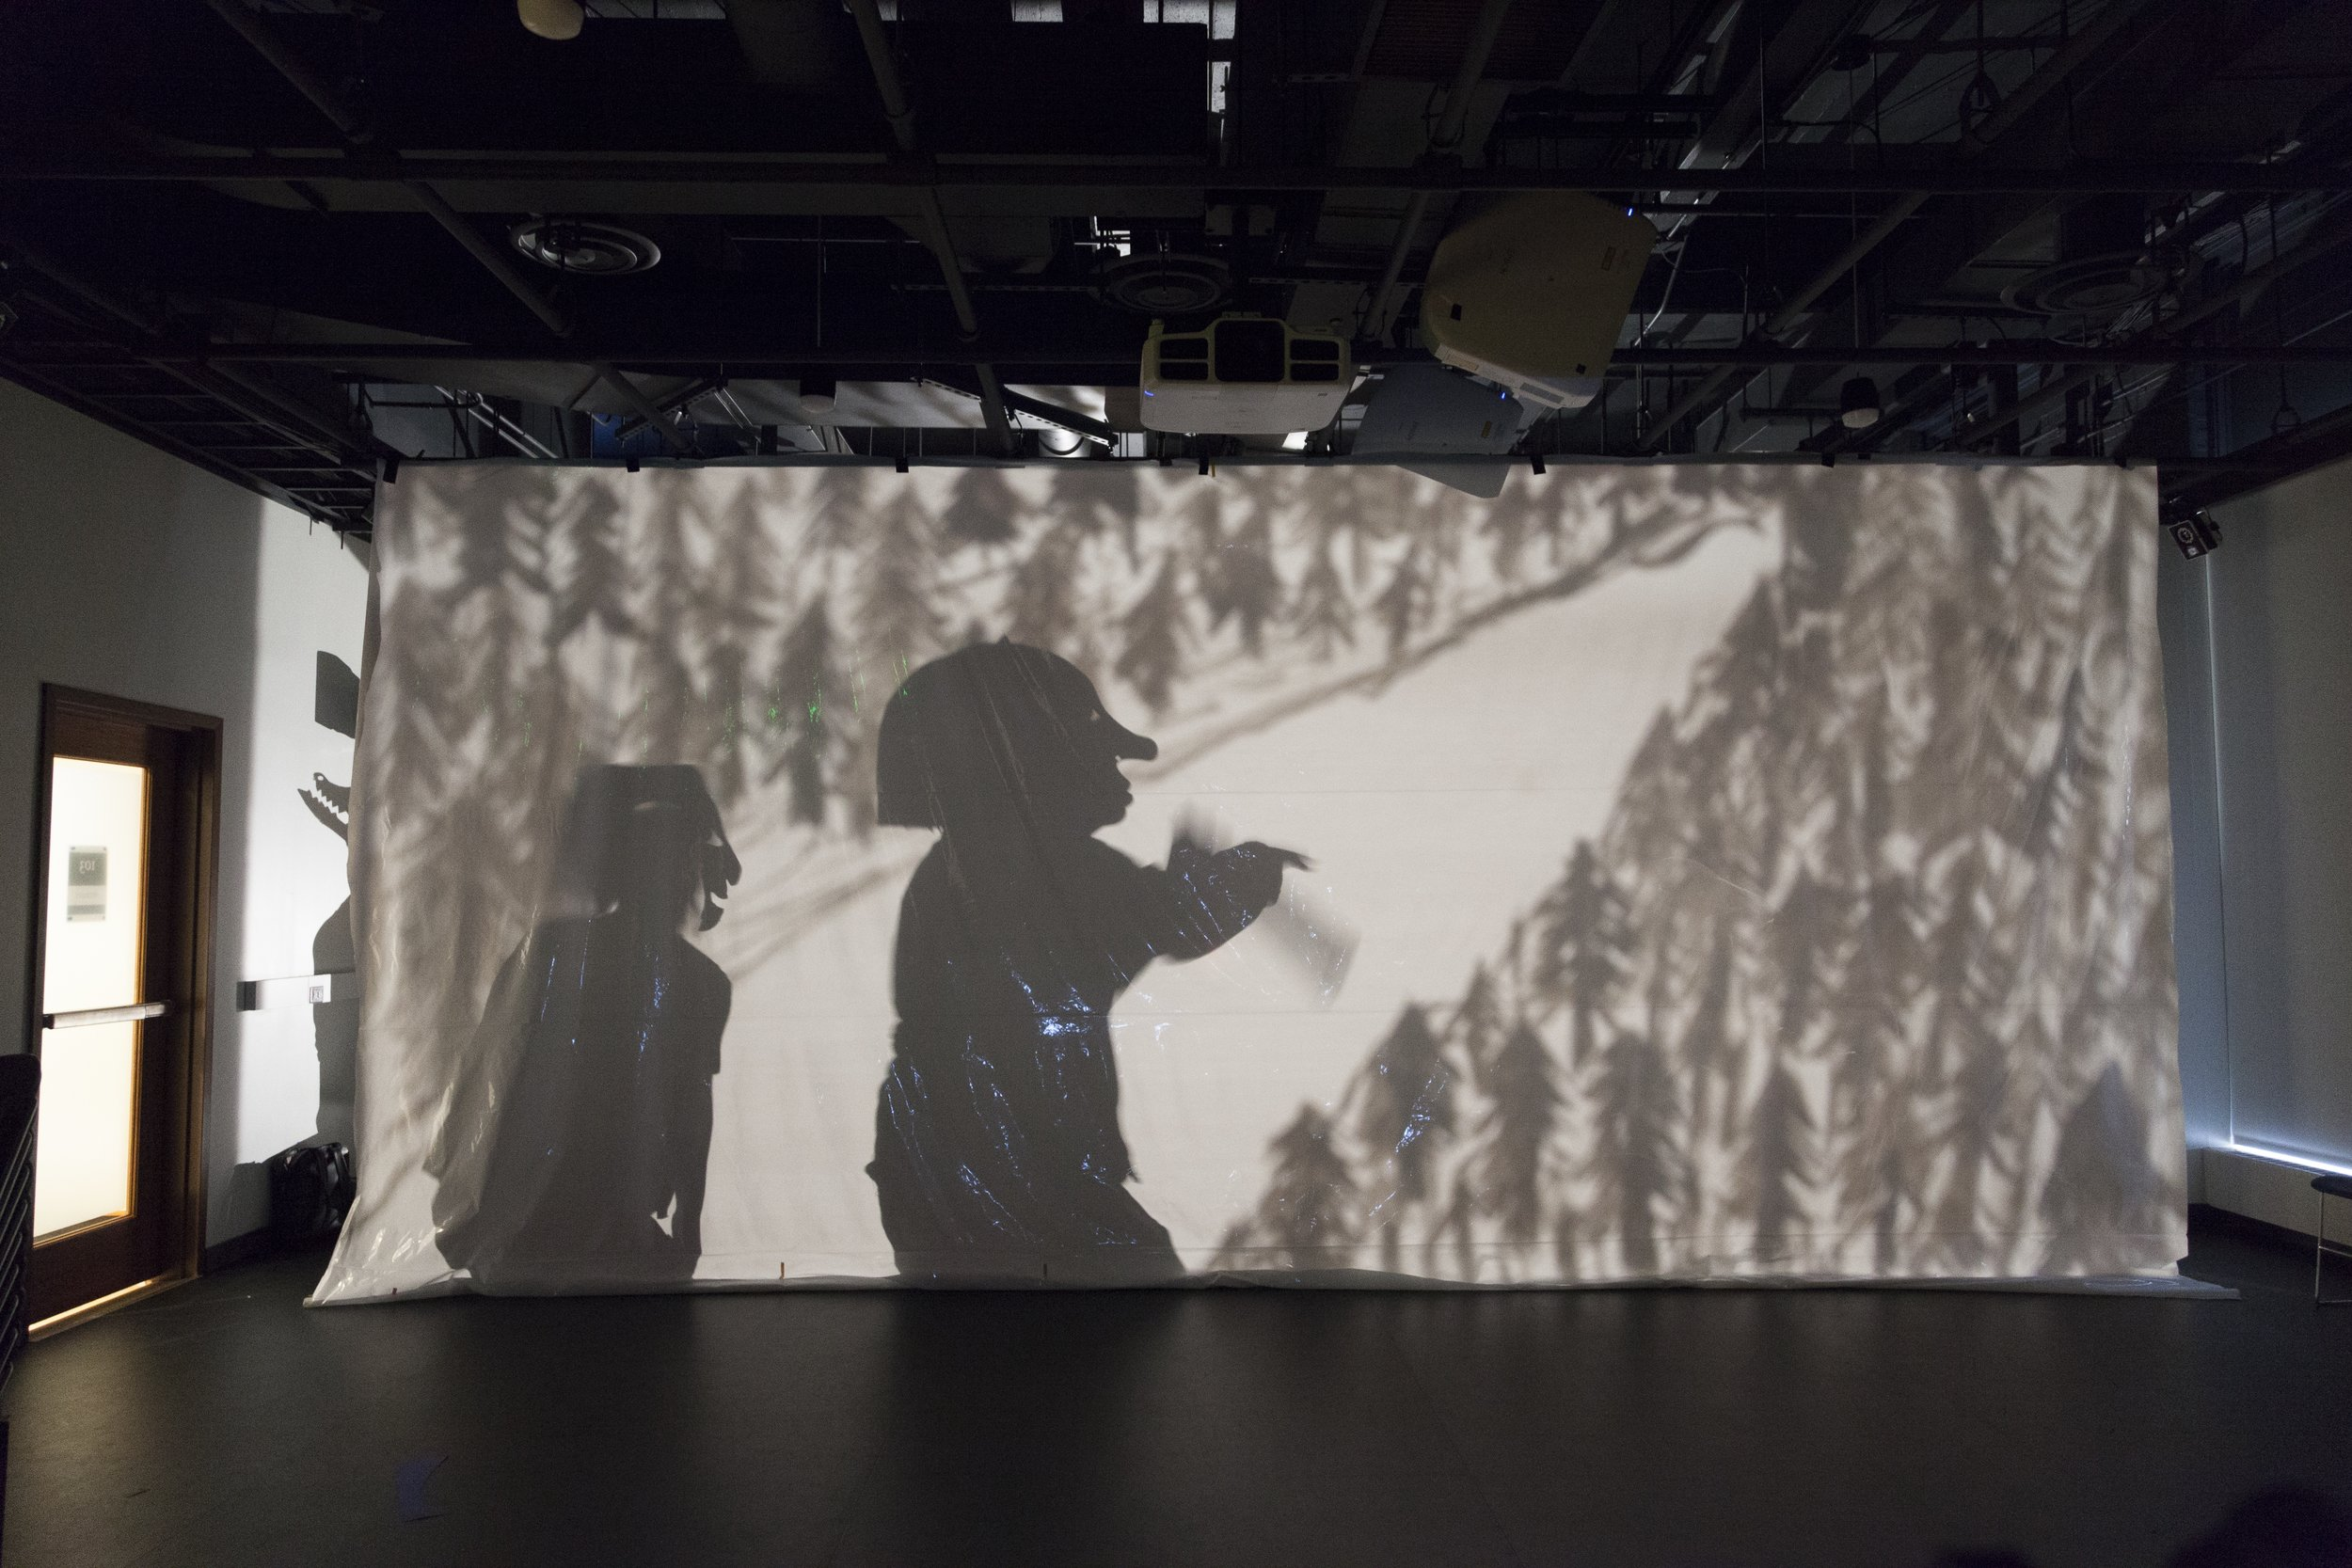 Shadow Light - Wayang shadow puppet workshop in collaboration with the Yale School of Drama Projection Design program and the Center for Collaborative Arts and Media, Fall 2017.